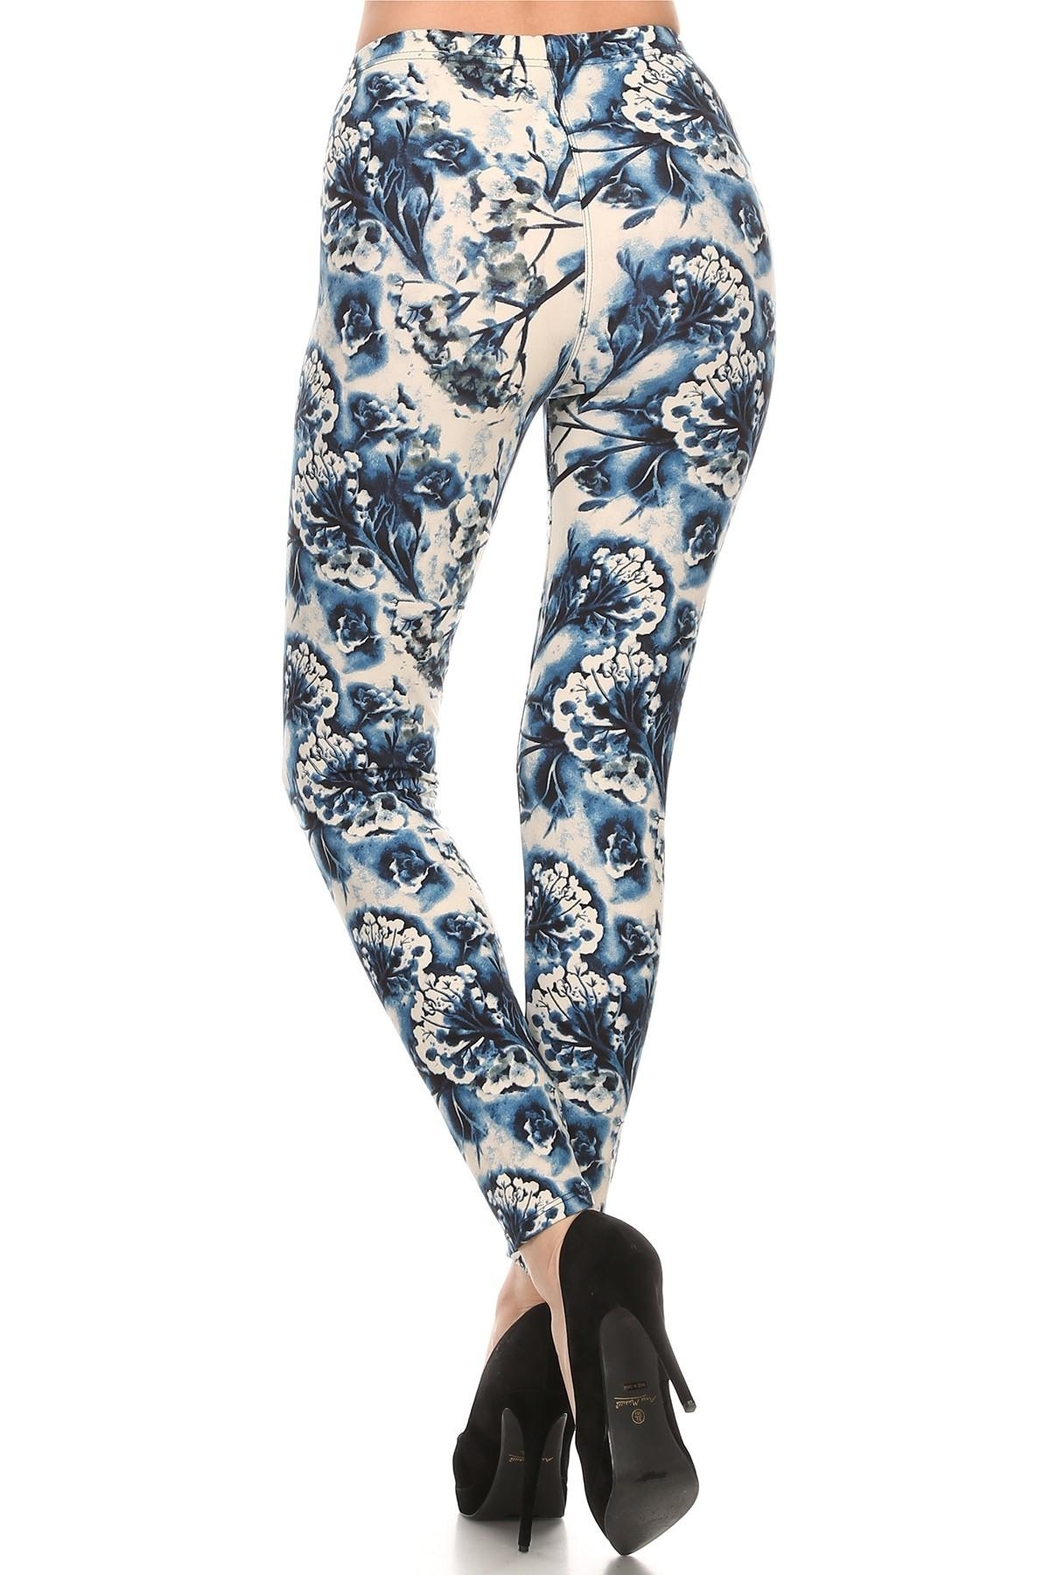 Leg Avenue Blue Floral Leggings - Front Full Image